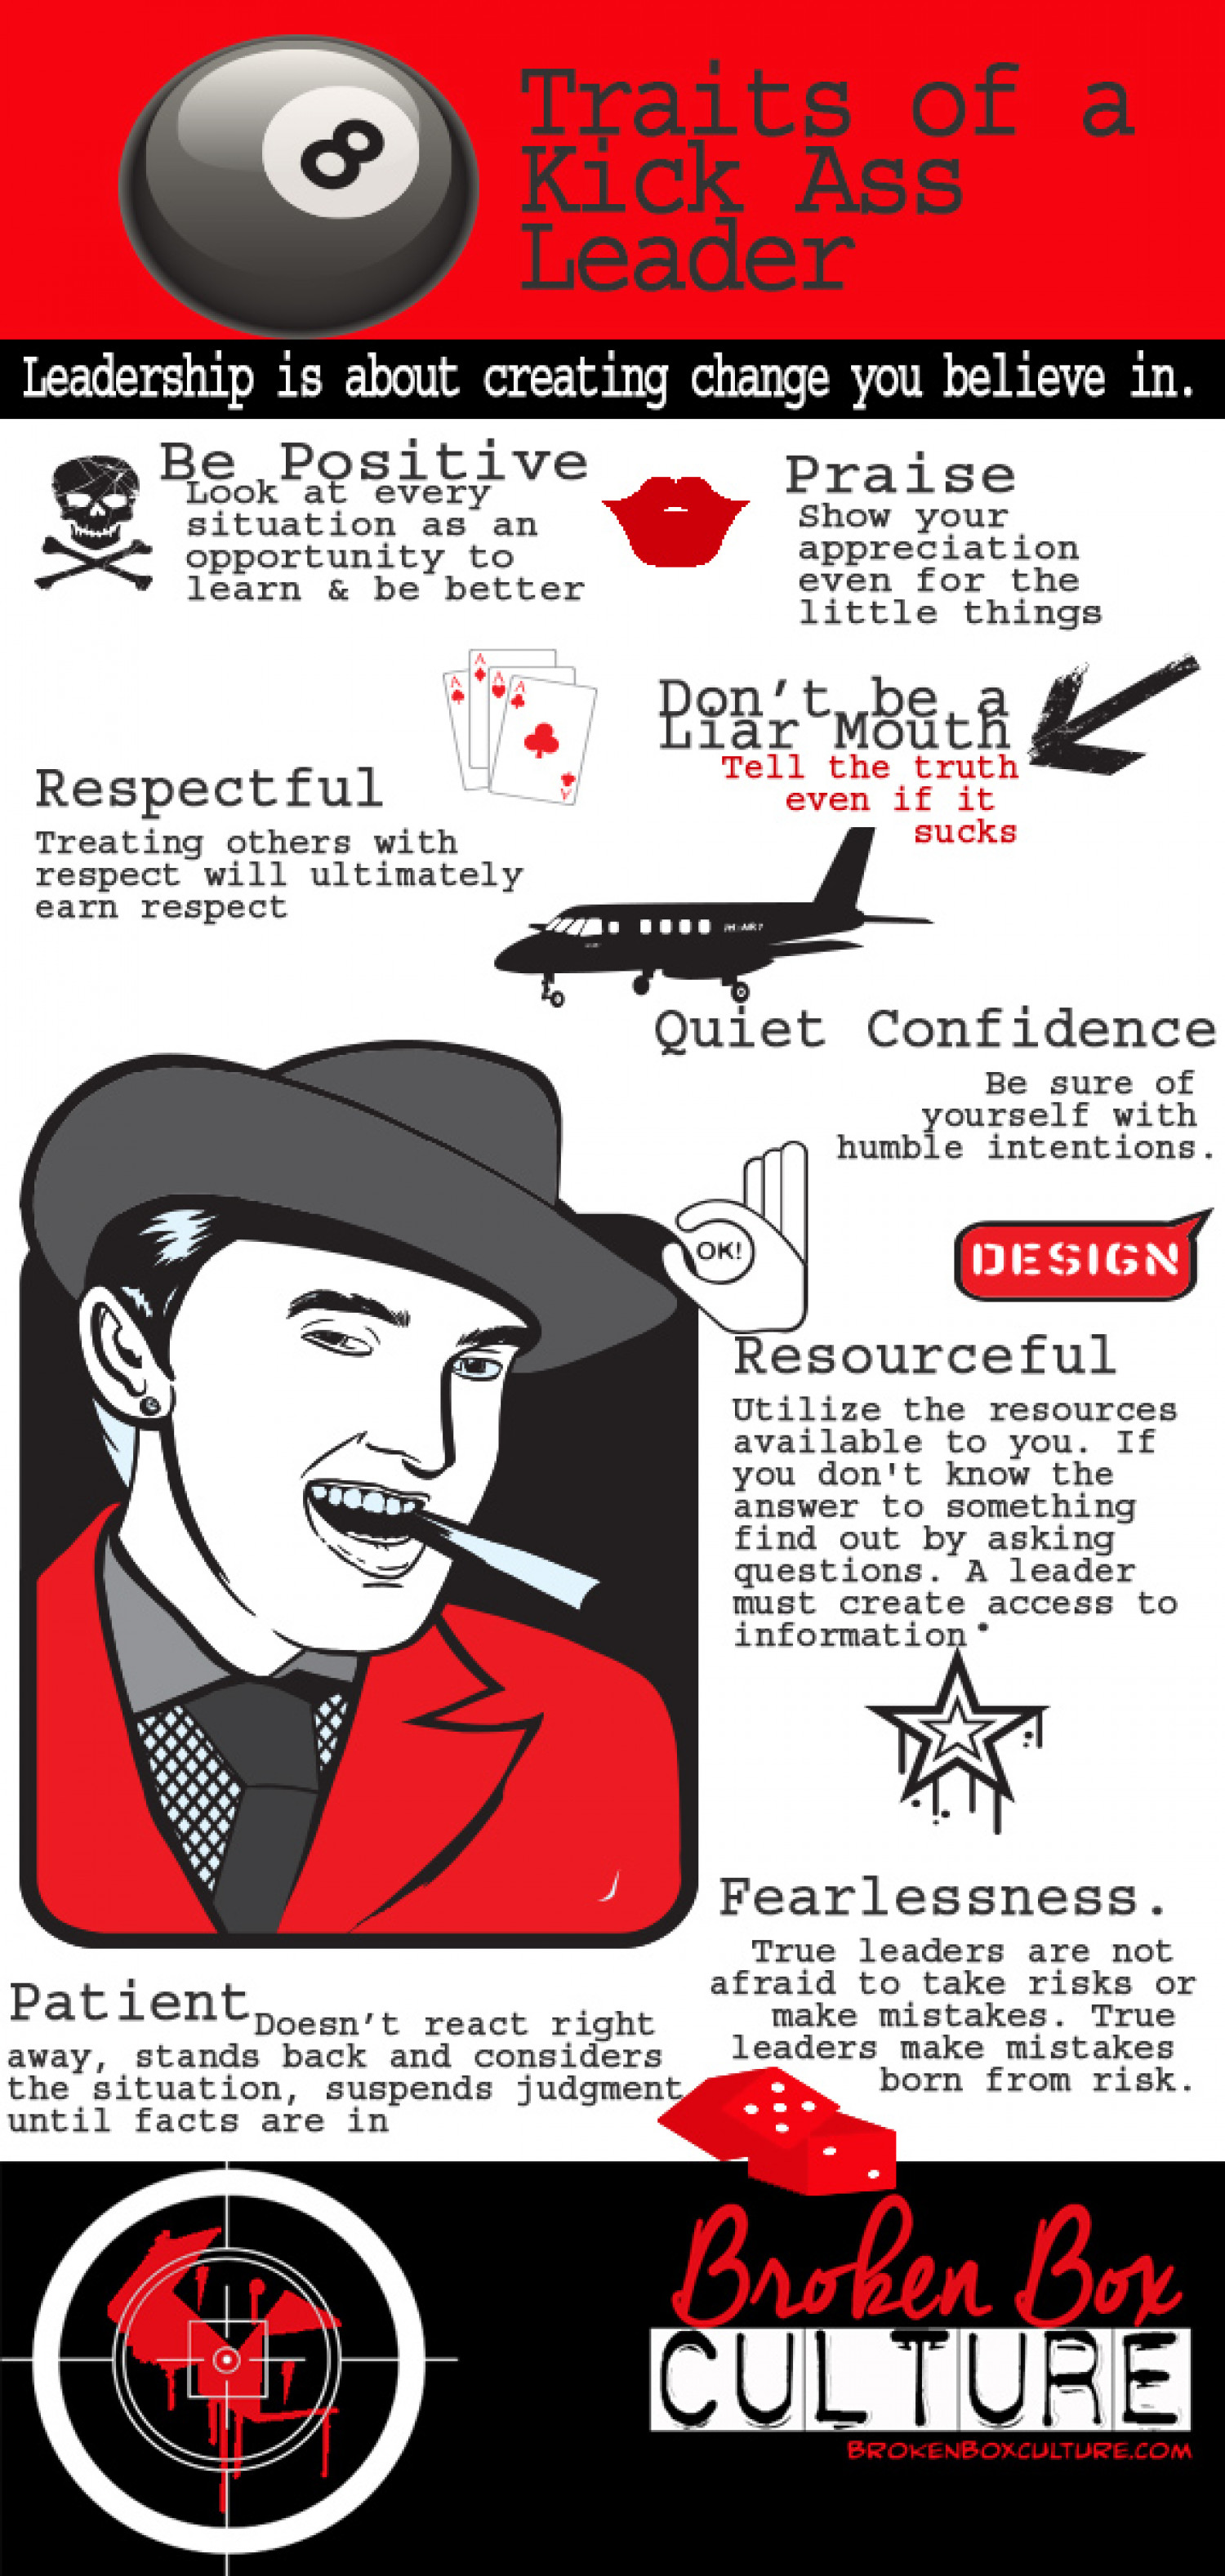 Traits of a Kick Ass Leader Infographic